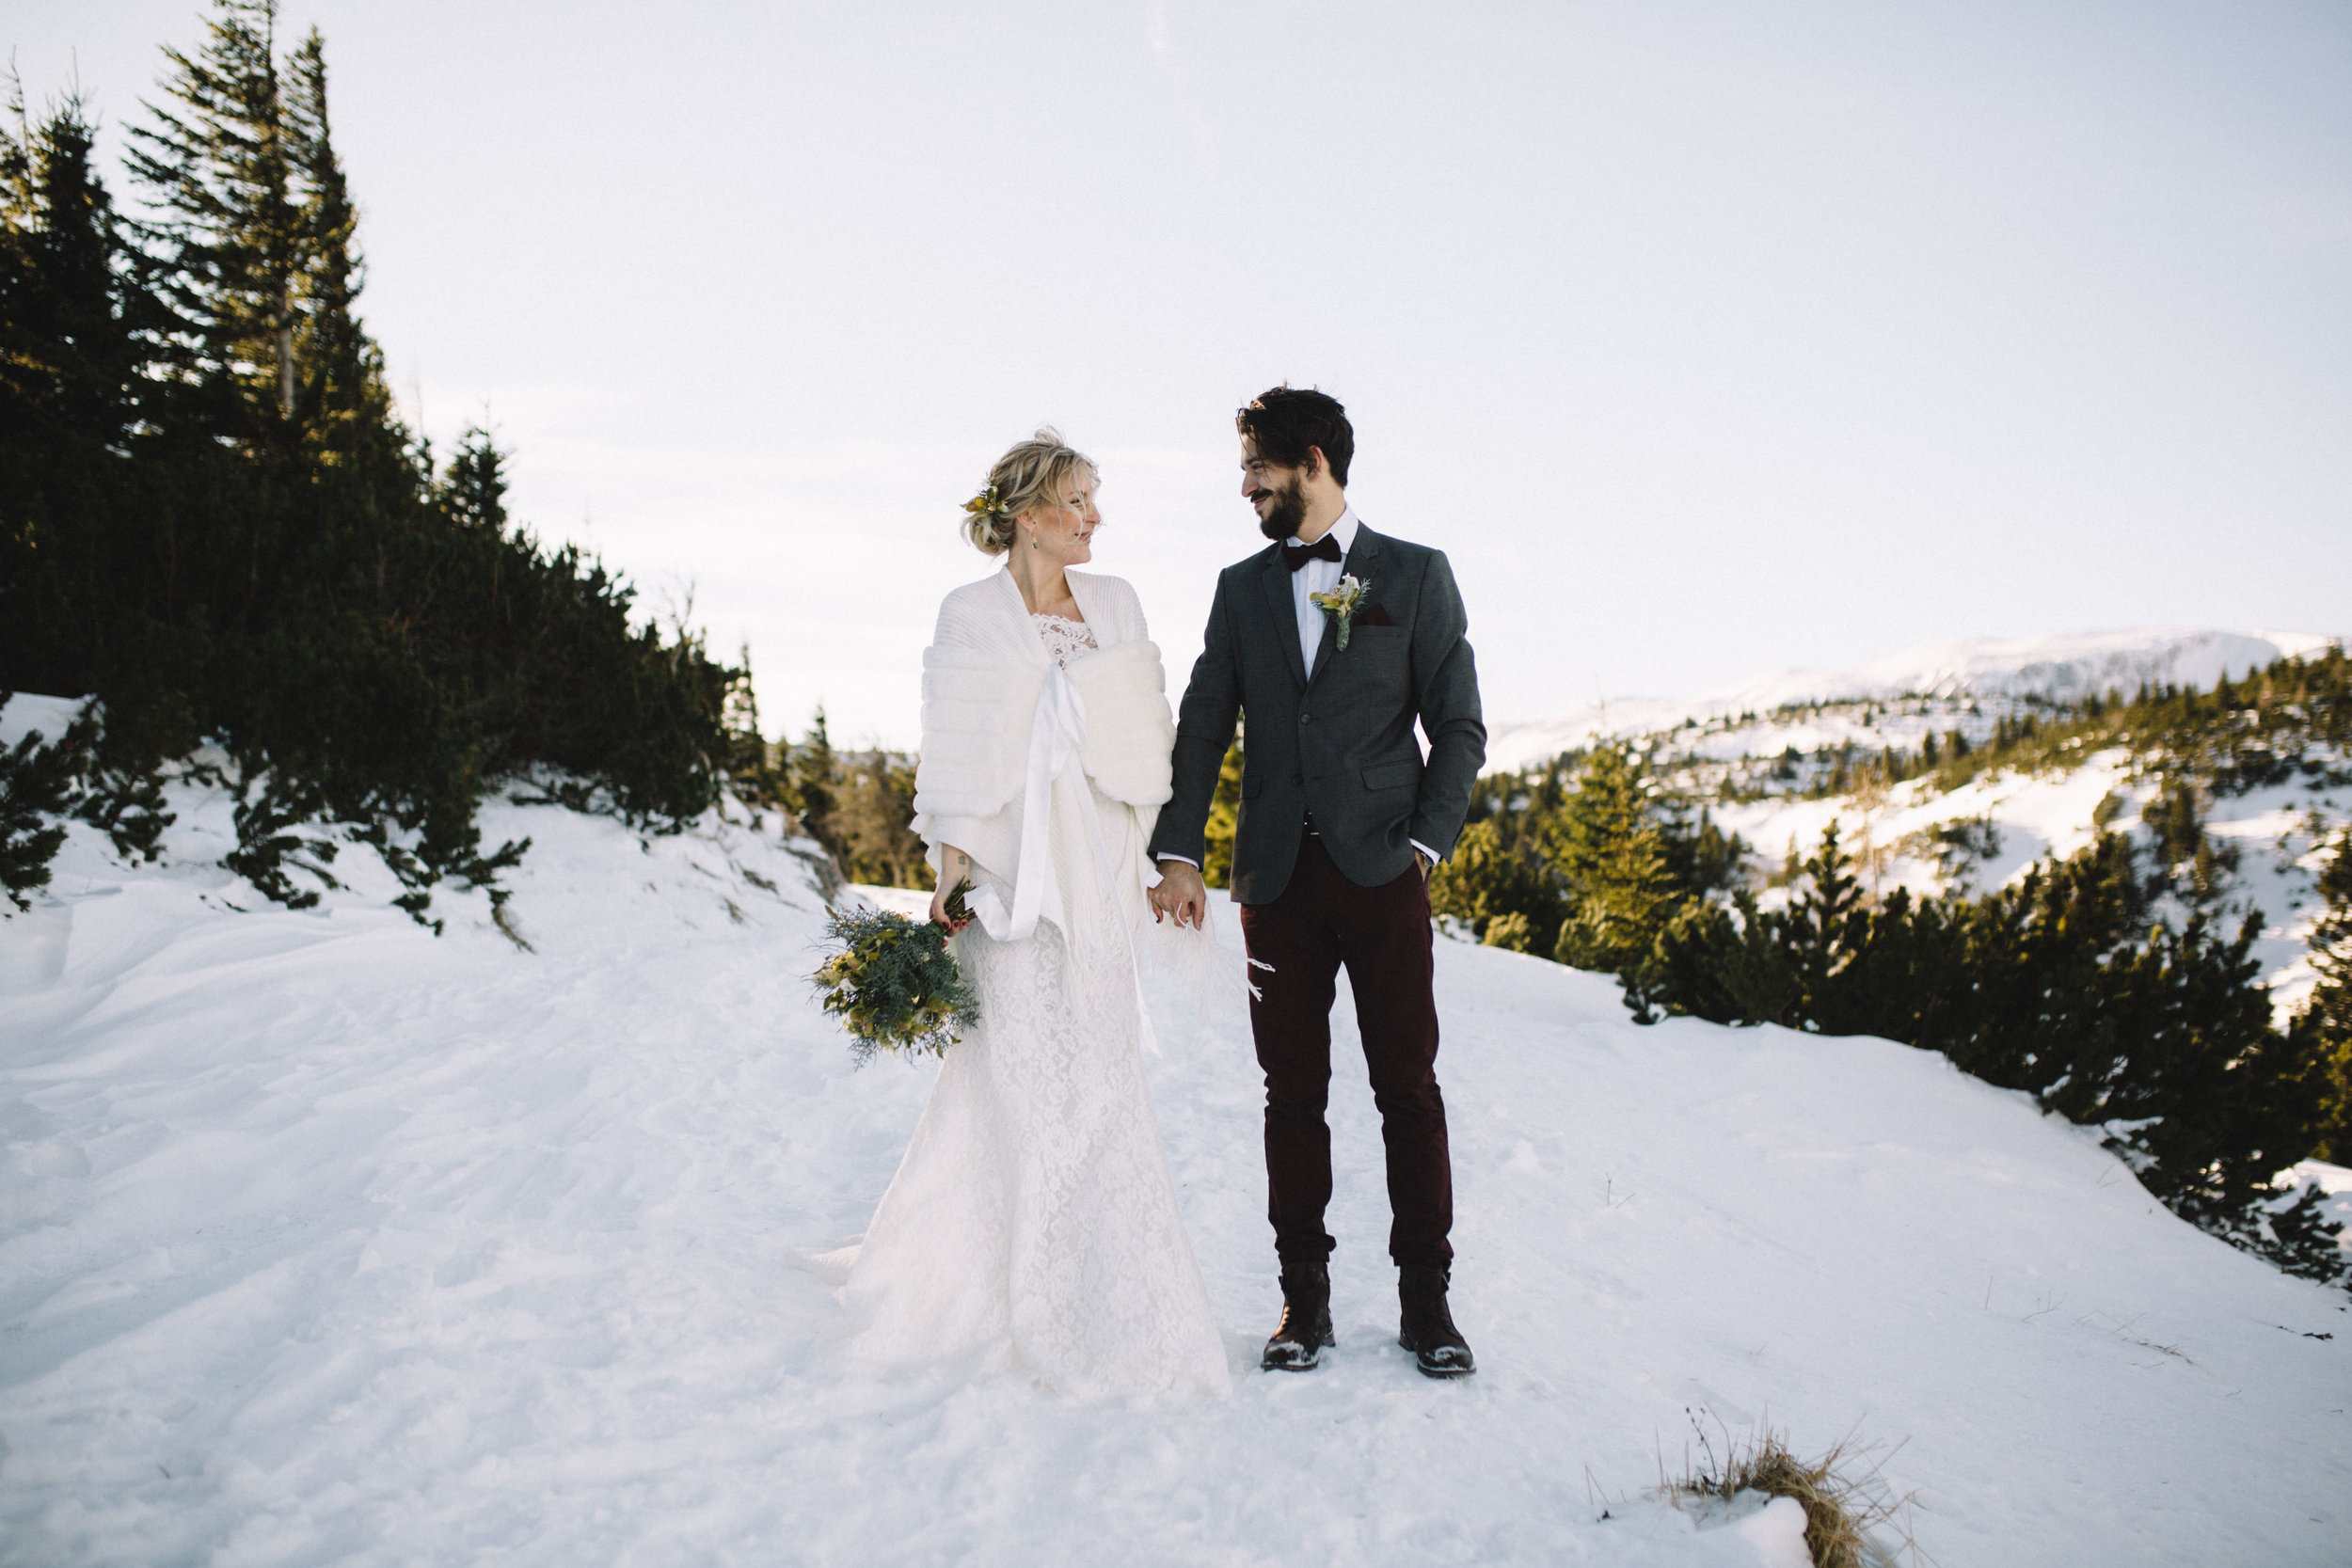 Moutain Winter Wedding-29.jpg